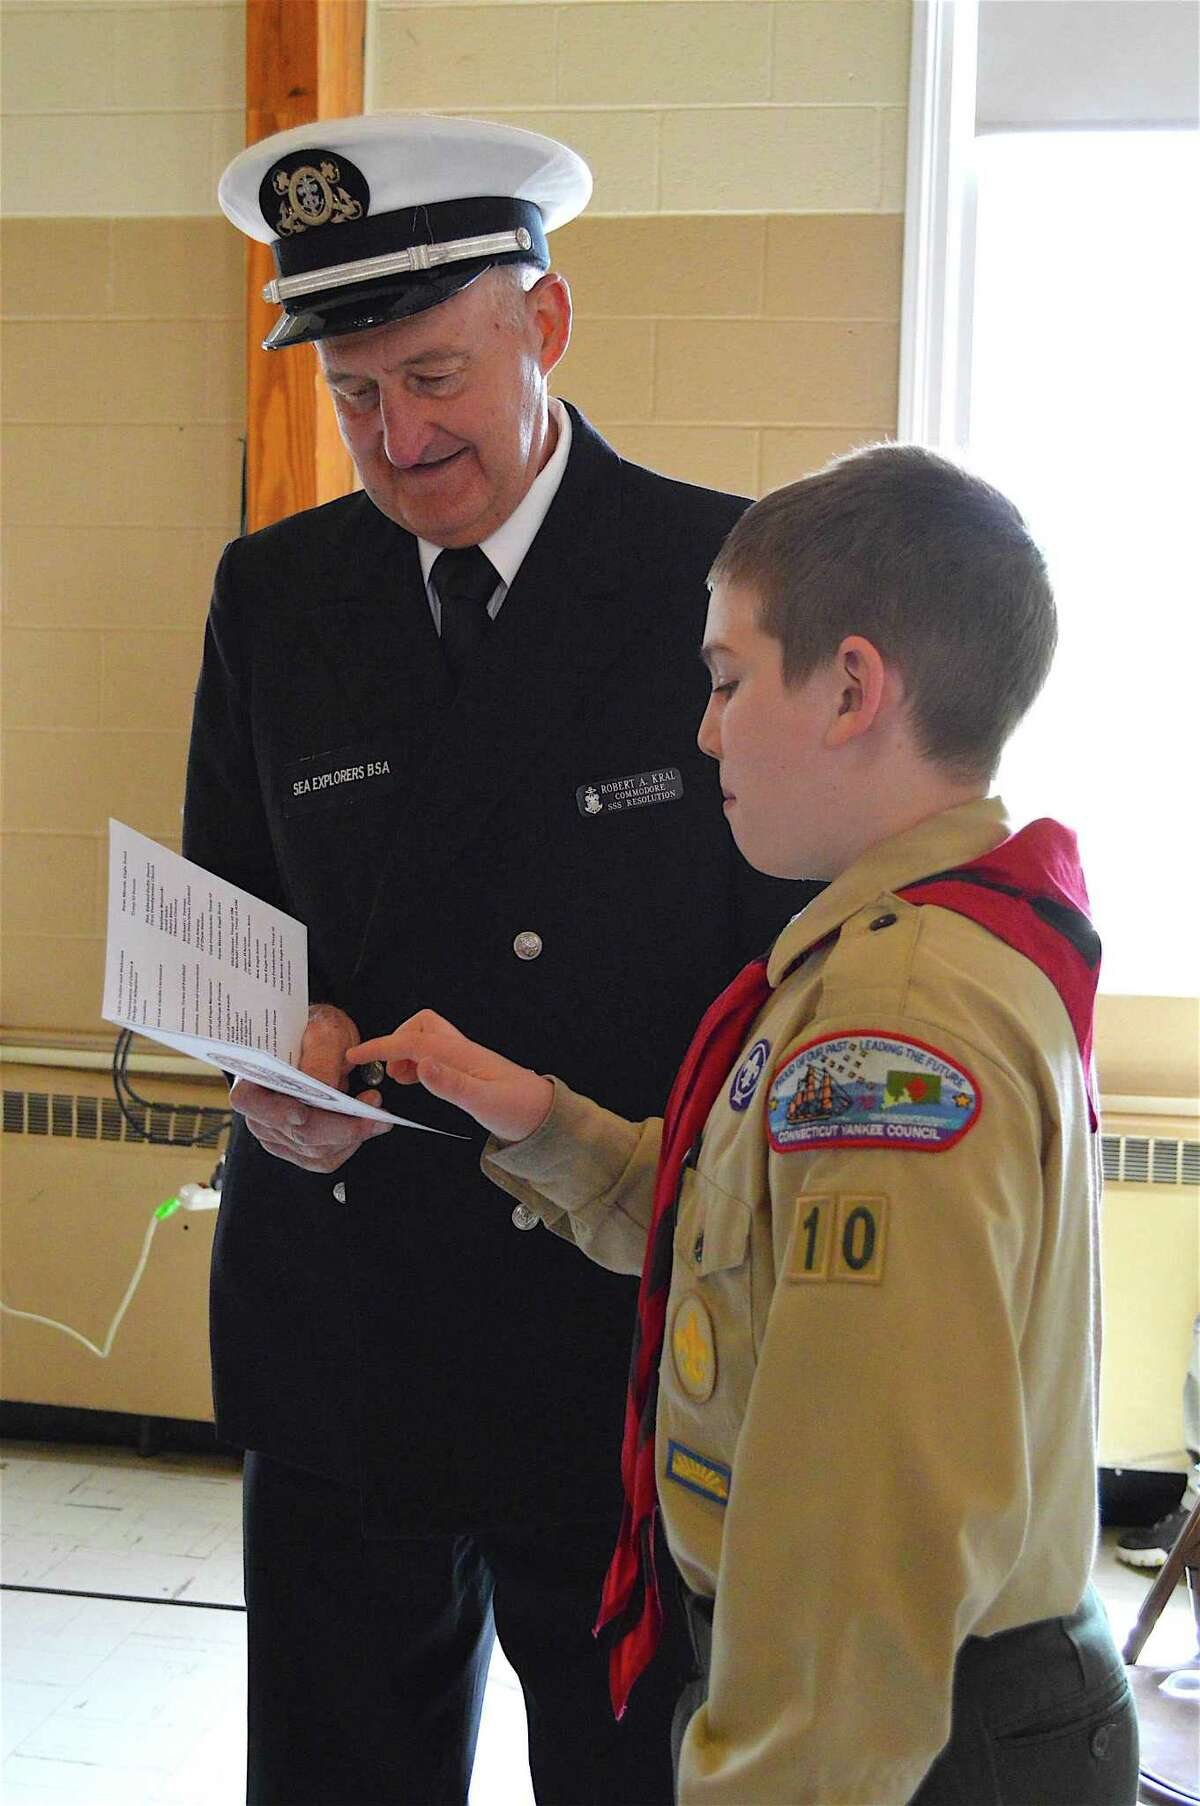 Scout Patrick Clancey, 11, of Fairfield, discusses the program with Commodore Robert Kral of the New England Floatilla at the BSA Troop 10 Eagle Court of Honor, Saturday, May 20, 2017, at First Presbyterian Church in Fairfield, Conn.